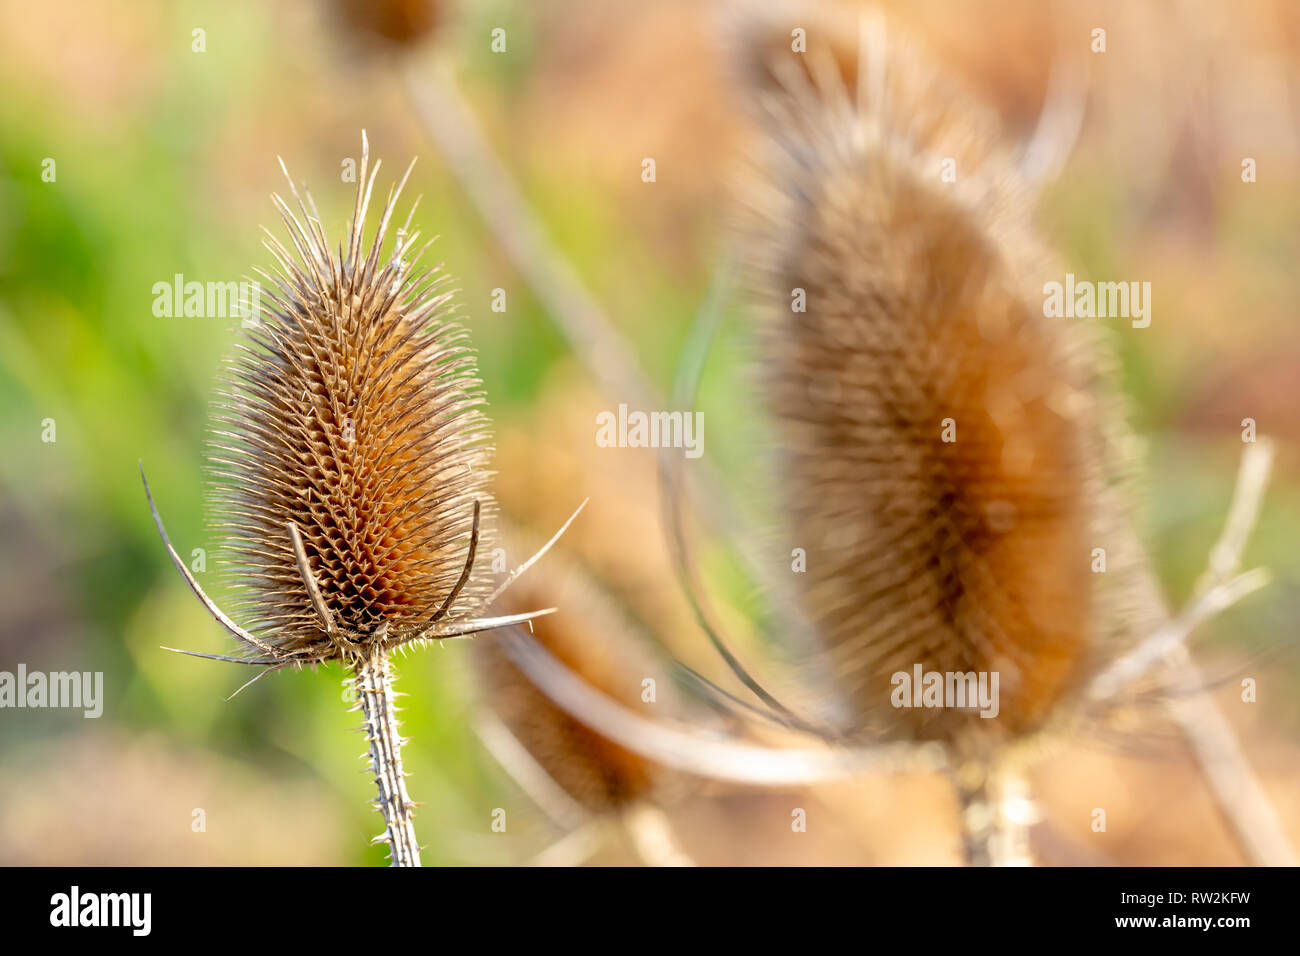 Creative selective focus photograph of a dead Common Teasel head (Dipsacus fullonum), shot off-centre with another head blurred in foreground. - Stock Image